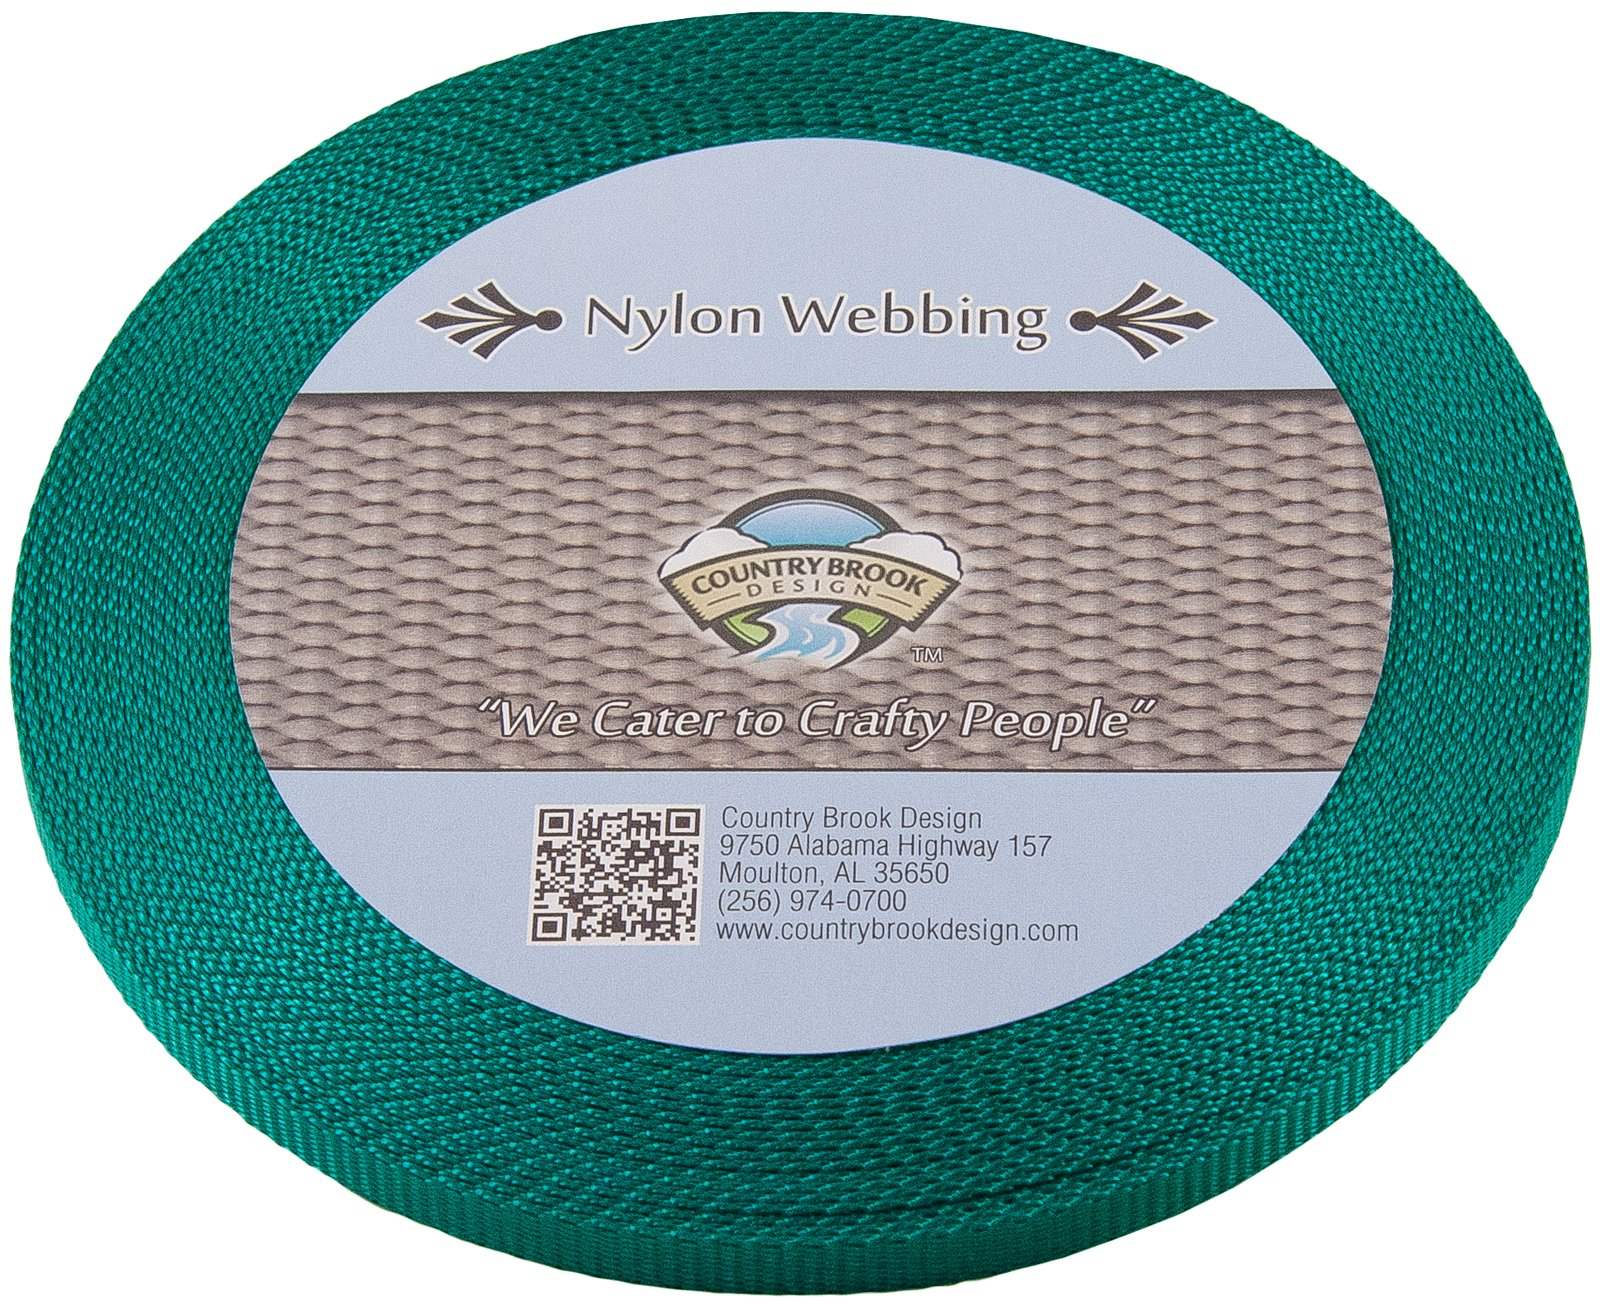 Country Brook Design | 3/8 Inch Teal Heavy Nylon Webbing, 10 Yards